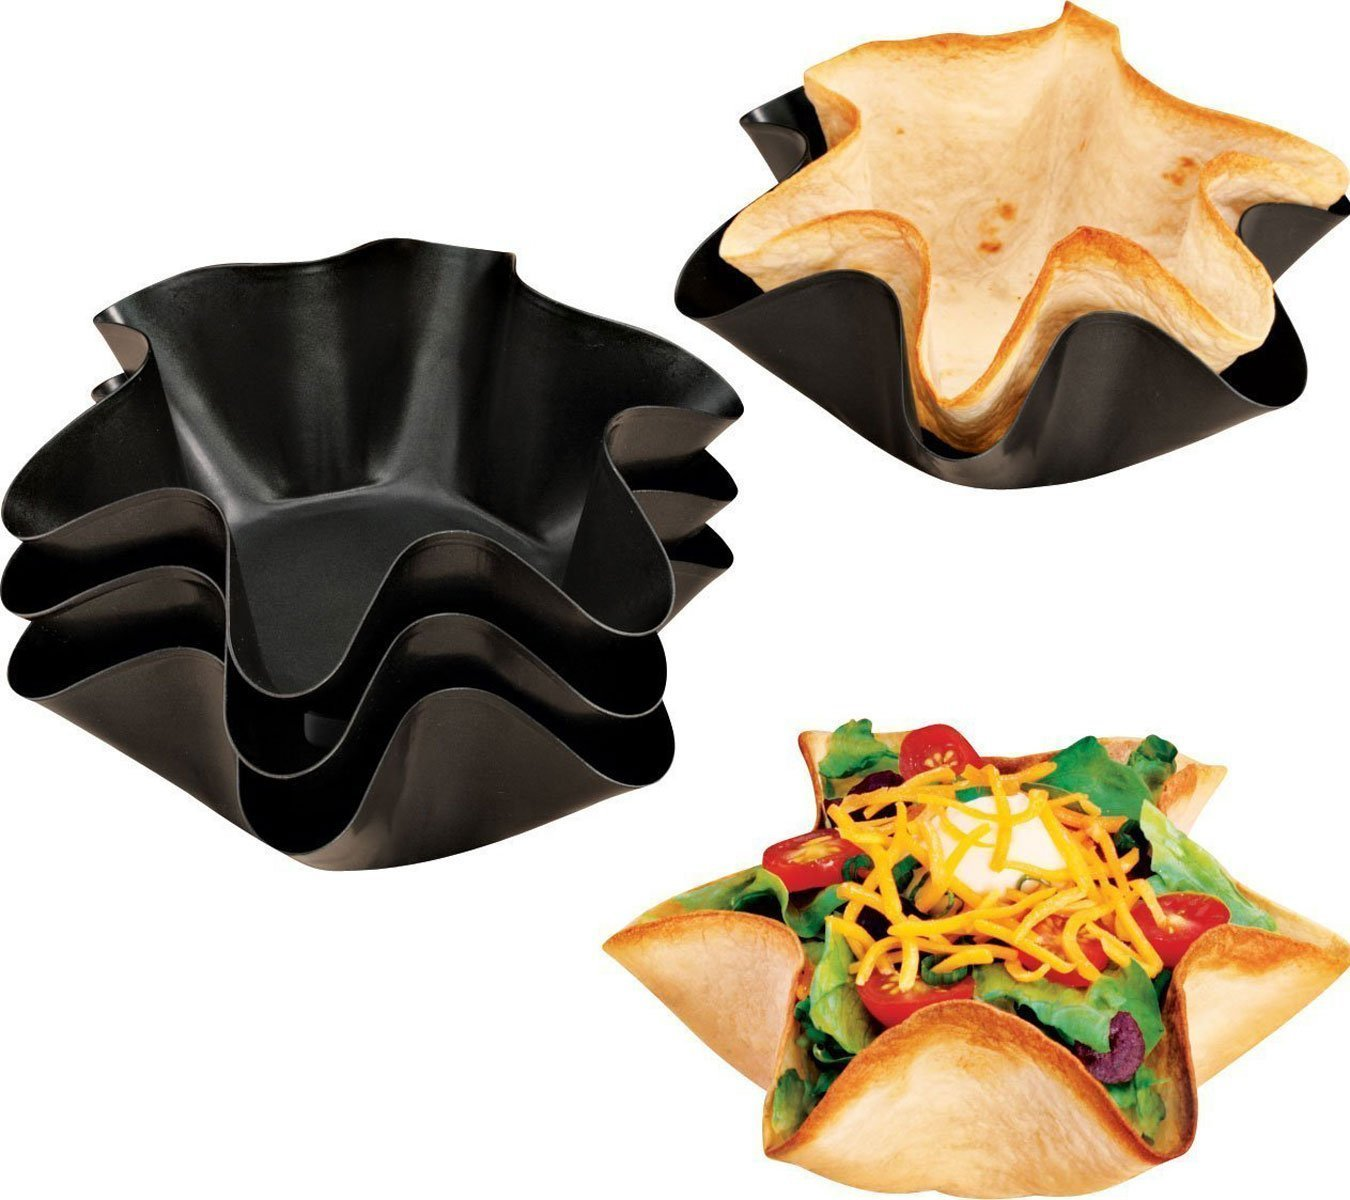 セットの4 Pans, Quick & Easy Tortilla Shell Makers, as well as Taco Bowlsメーカー。食器洗い機セーフ。 B07DC139P6